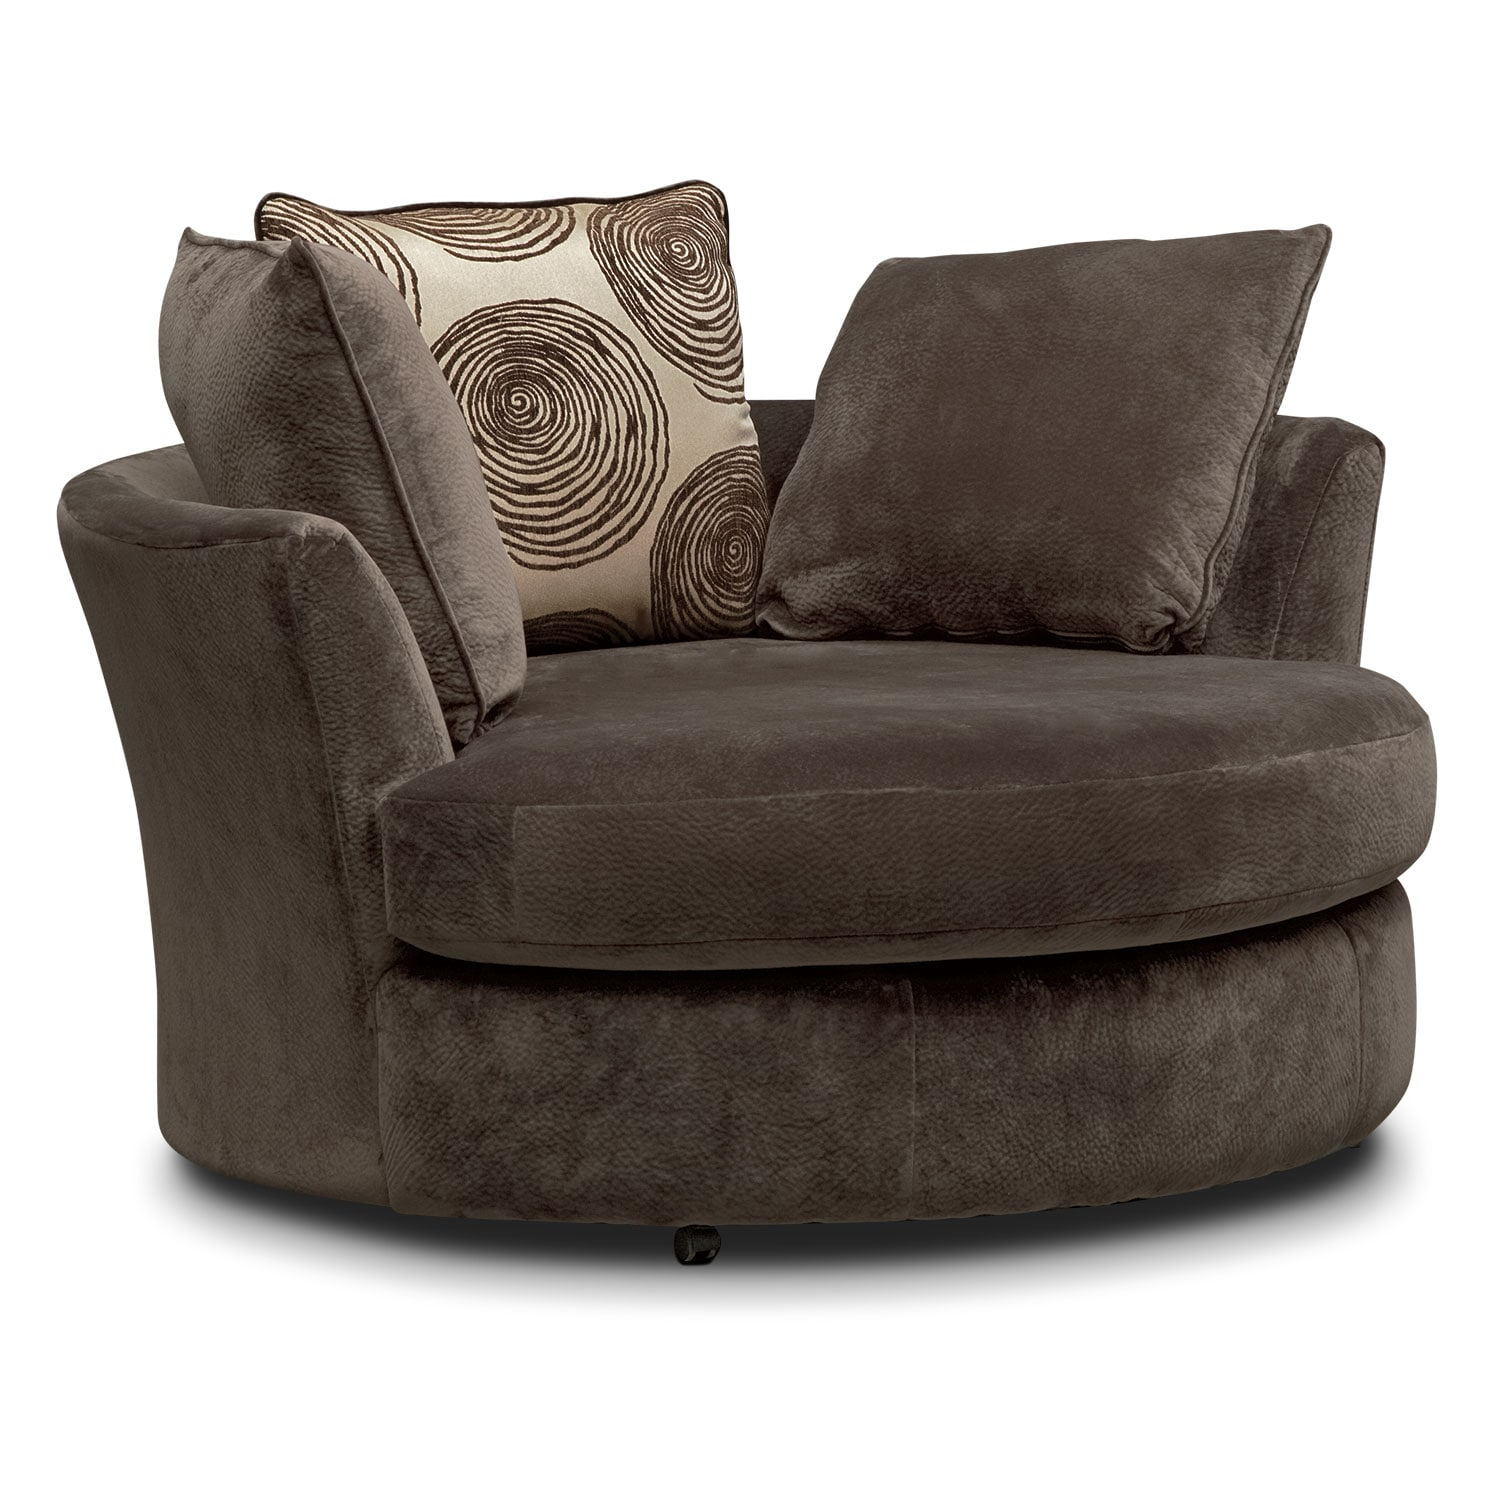 Cordelle Swivel Chair Chocolate